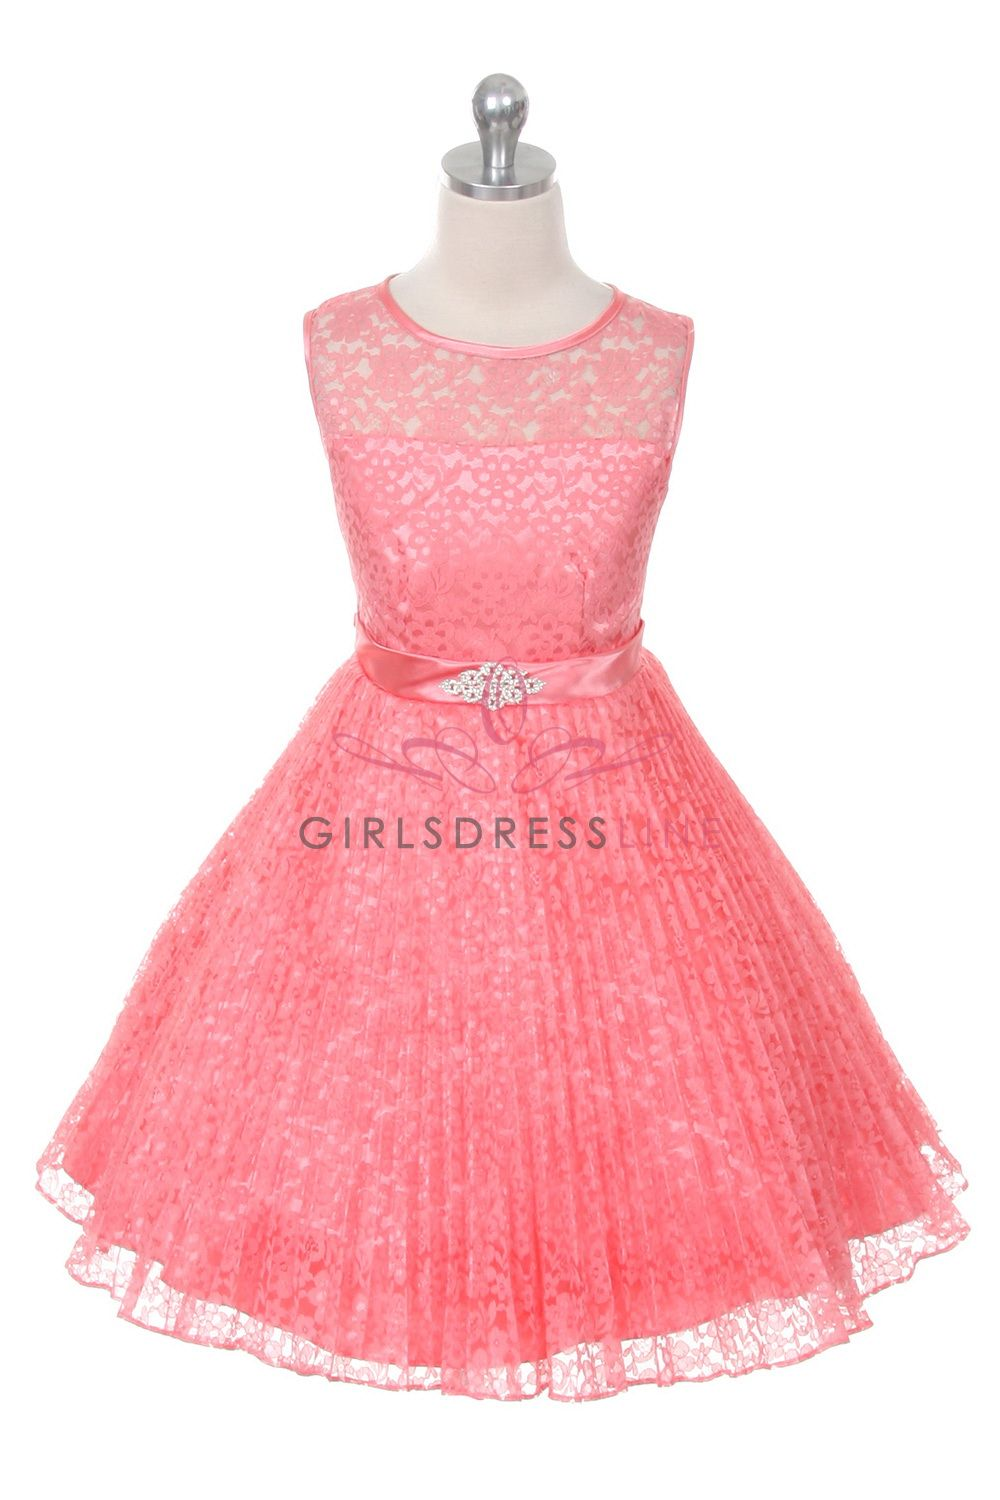 55f0e3dcfc2c Coral+Lace+Pleated+Flower+Girl+Dresses +A3527-CR+$42.95+on+www.GirlsDressLine.Com